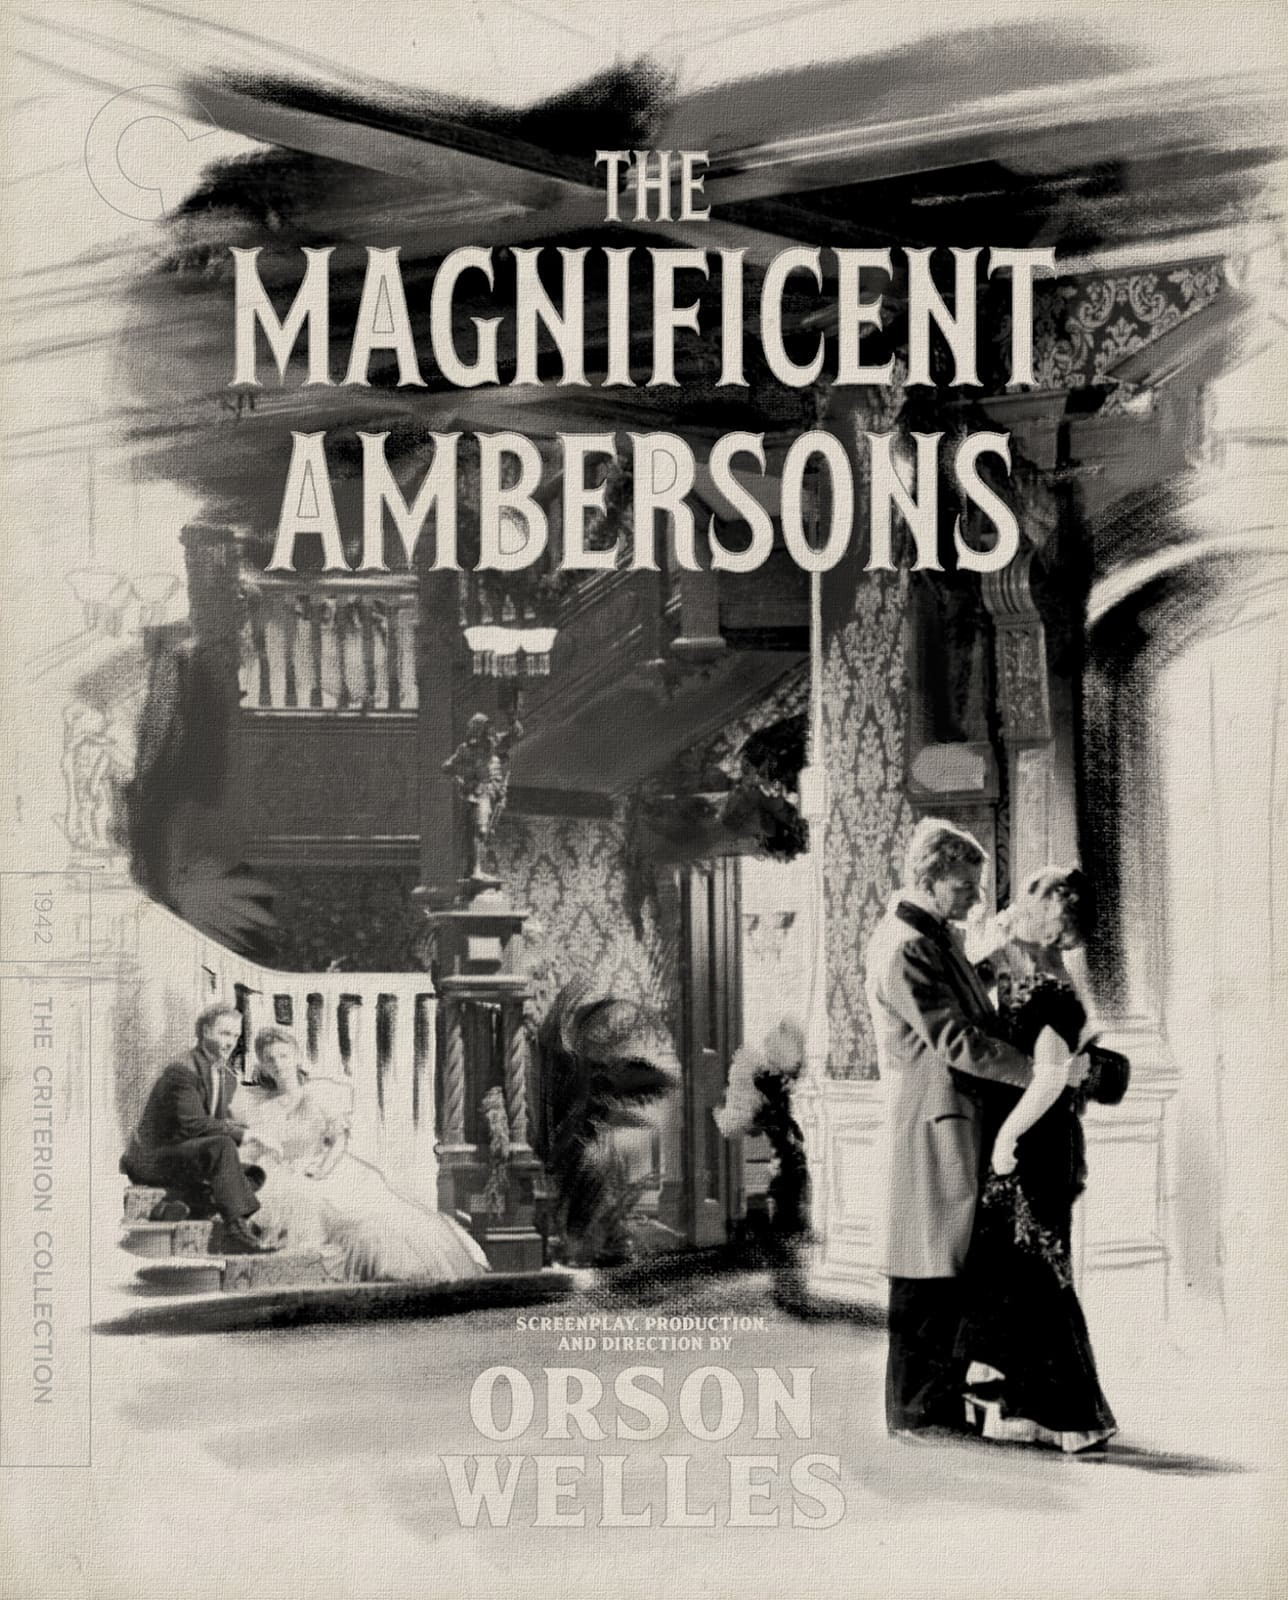 The Magnificent Ambersons (1942) - Directed by: Orson WellesStarring: Tim Holt, Agnes Moorehead, Anne Baxter, Joseph Cotton, Dolores CostelloRated: NR (Suggested PG for Thematic Material)Running Time: 1 h 28 mTMM Score: 5 stars out of 5STRENGTHS: Directing, Writing, Acting, Cinematography, StoryWEAKNESSES: Last Five Minutes